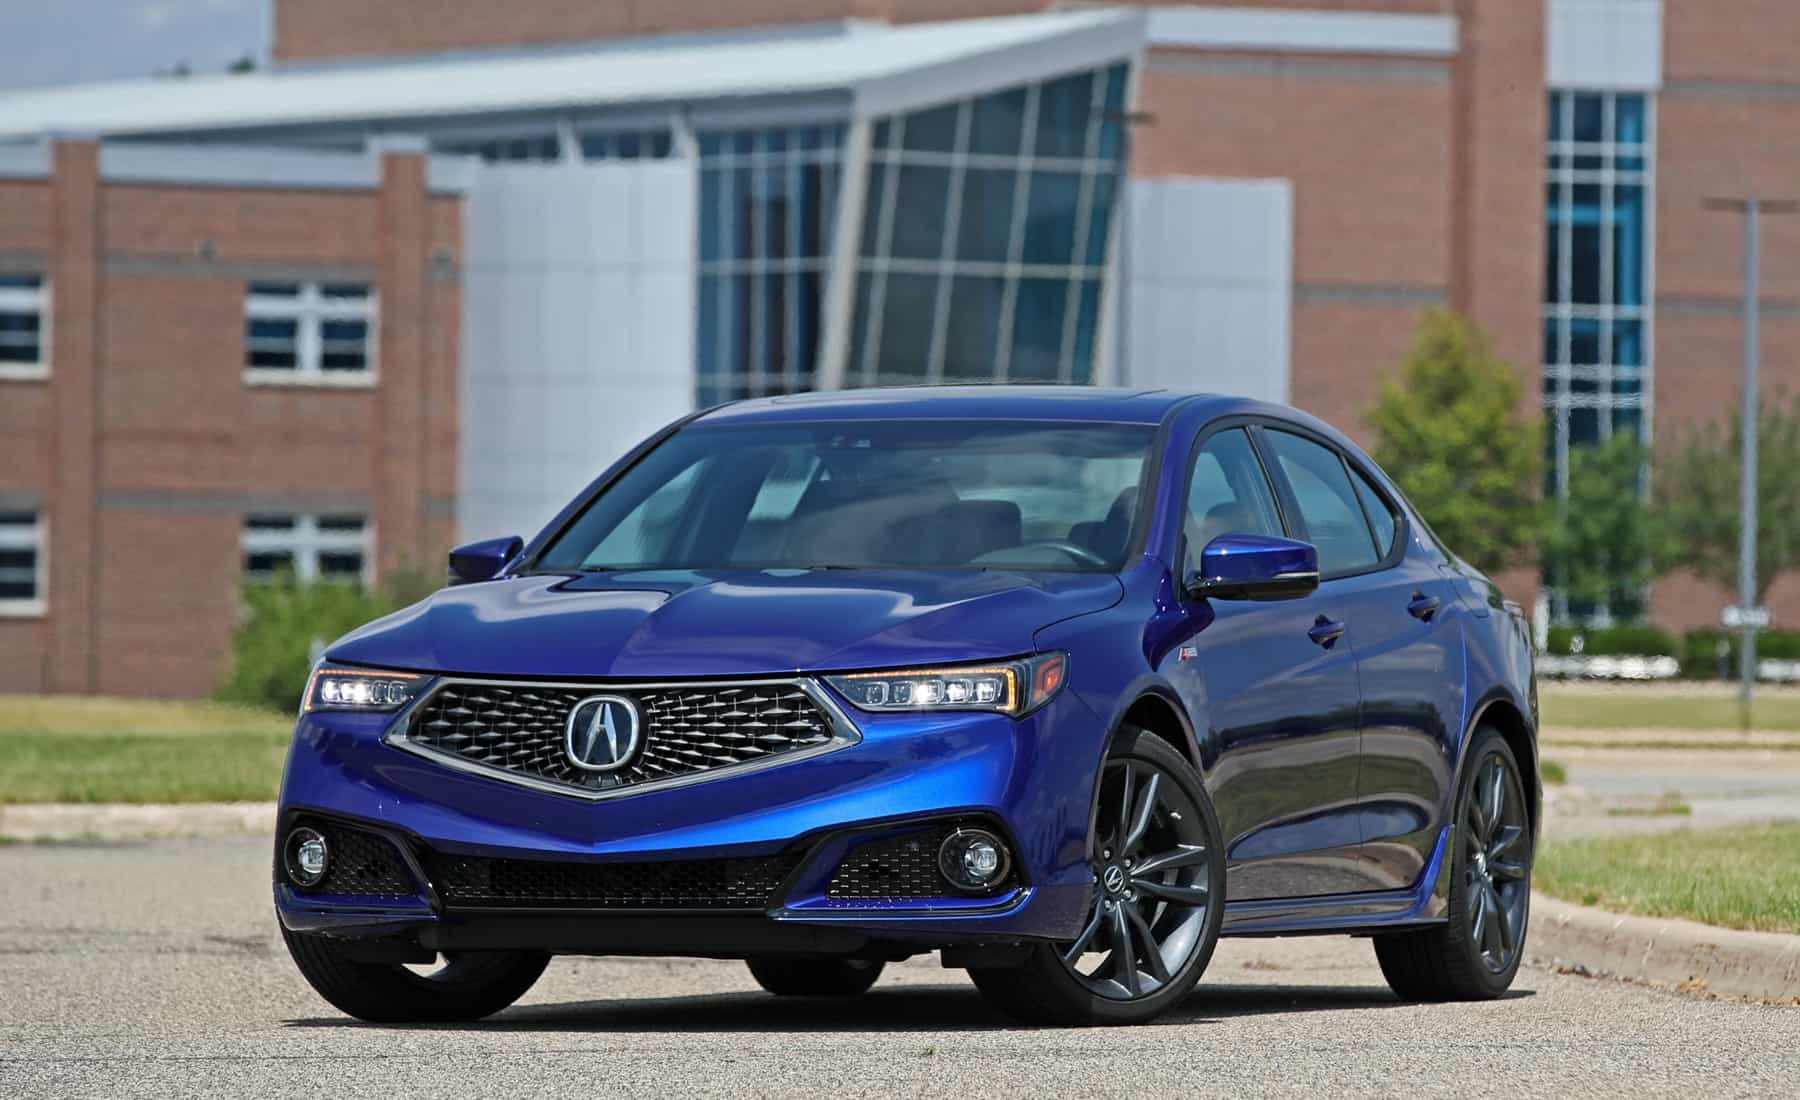 2018 Acura TLX Exterior Front (Photo 45 of 46)